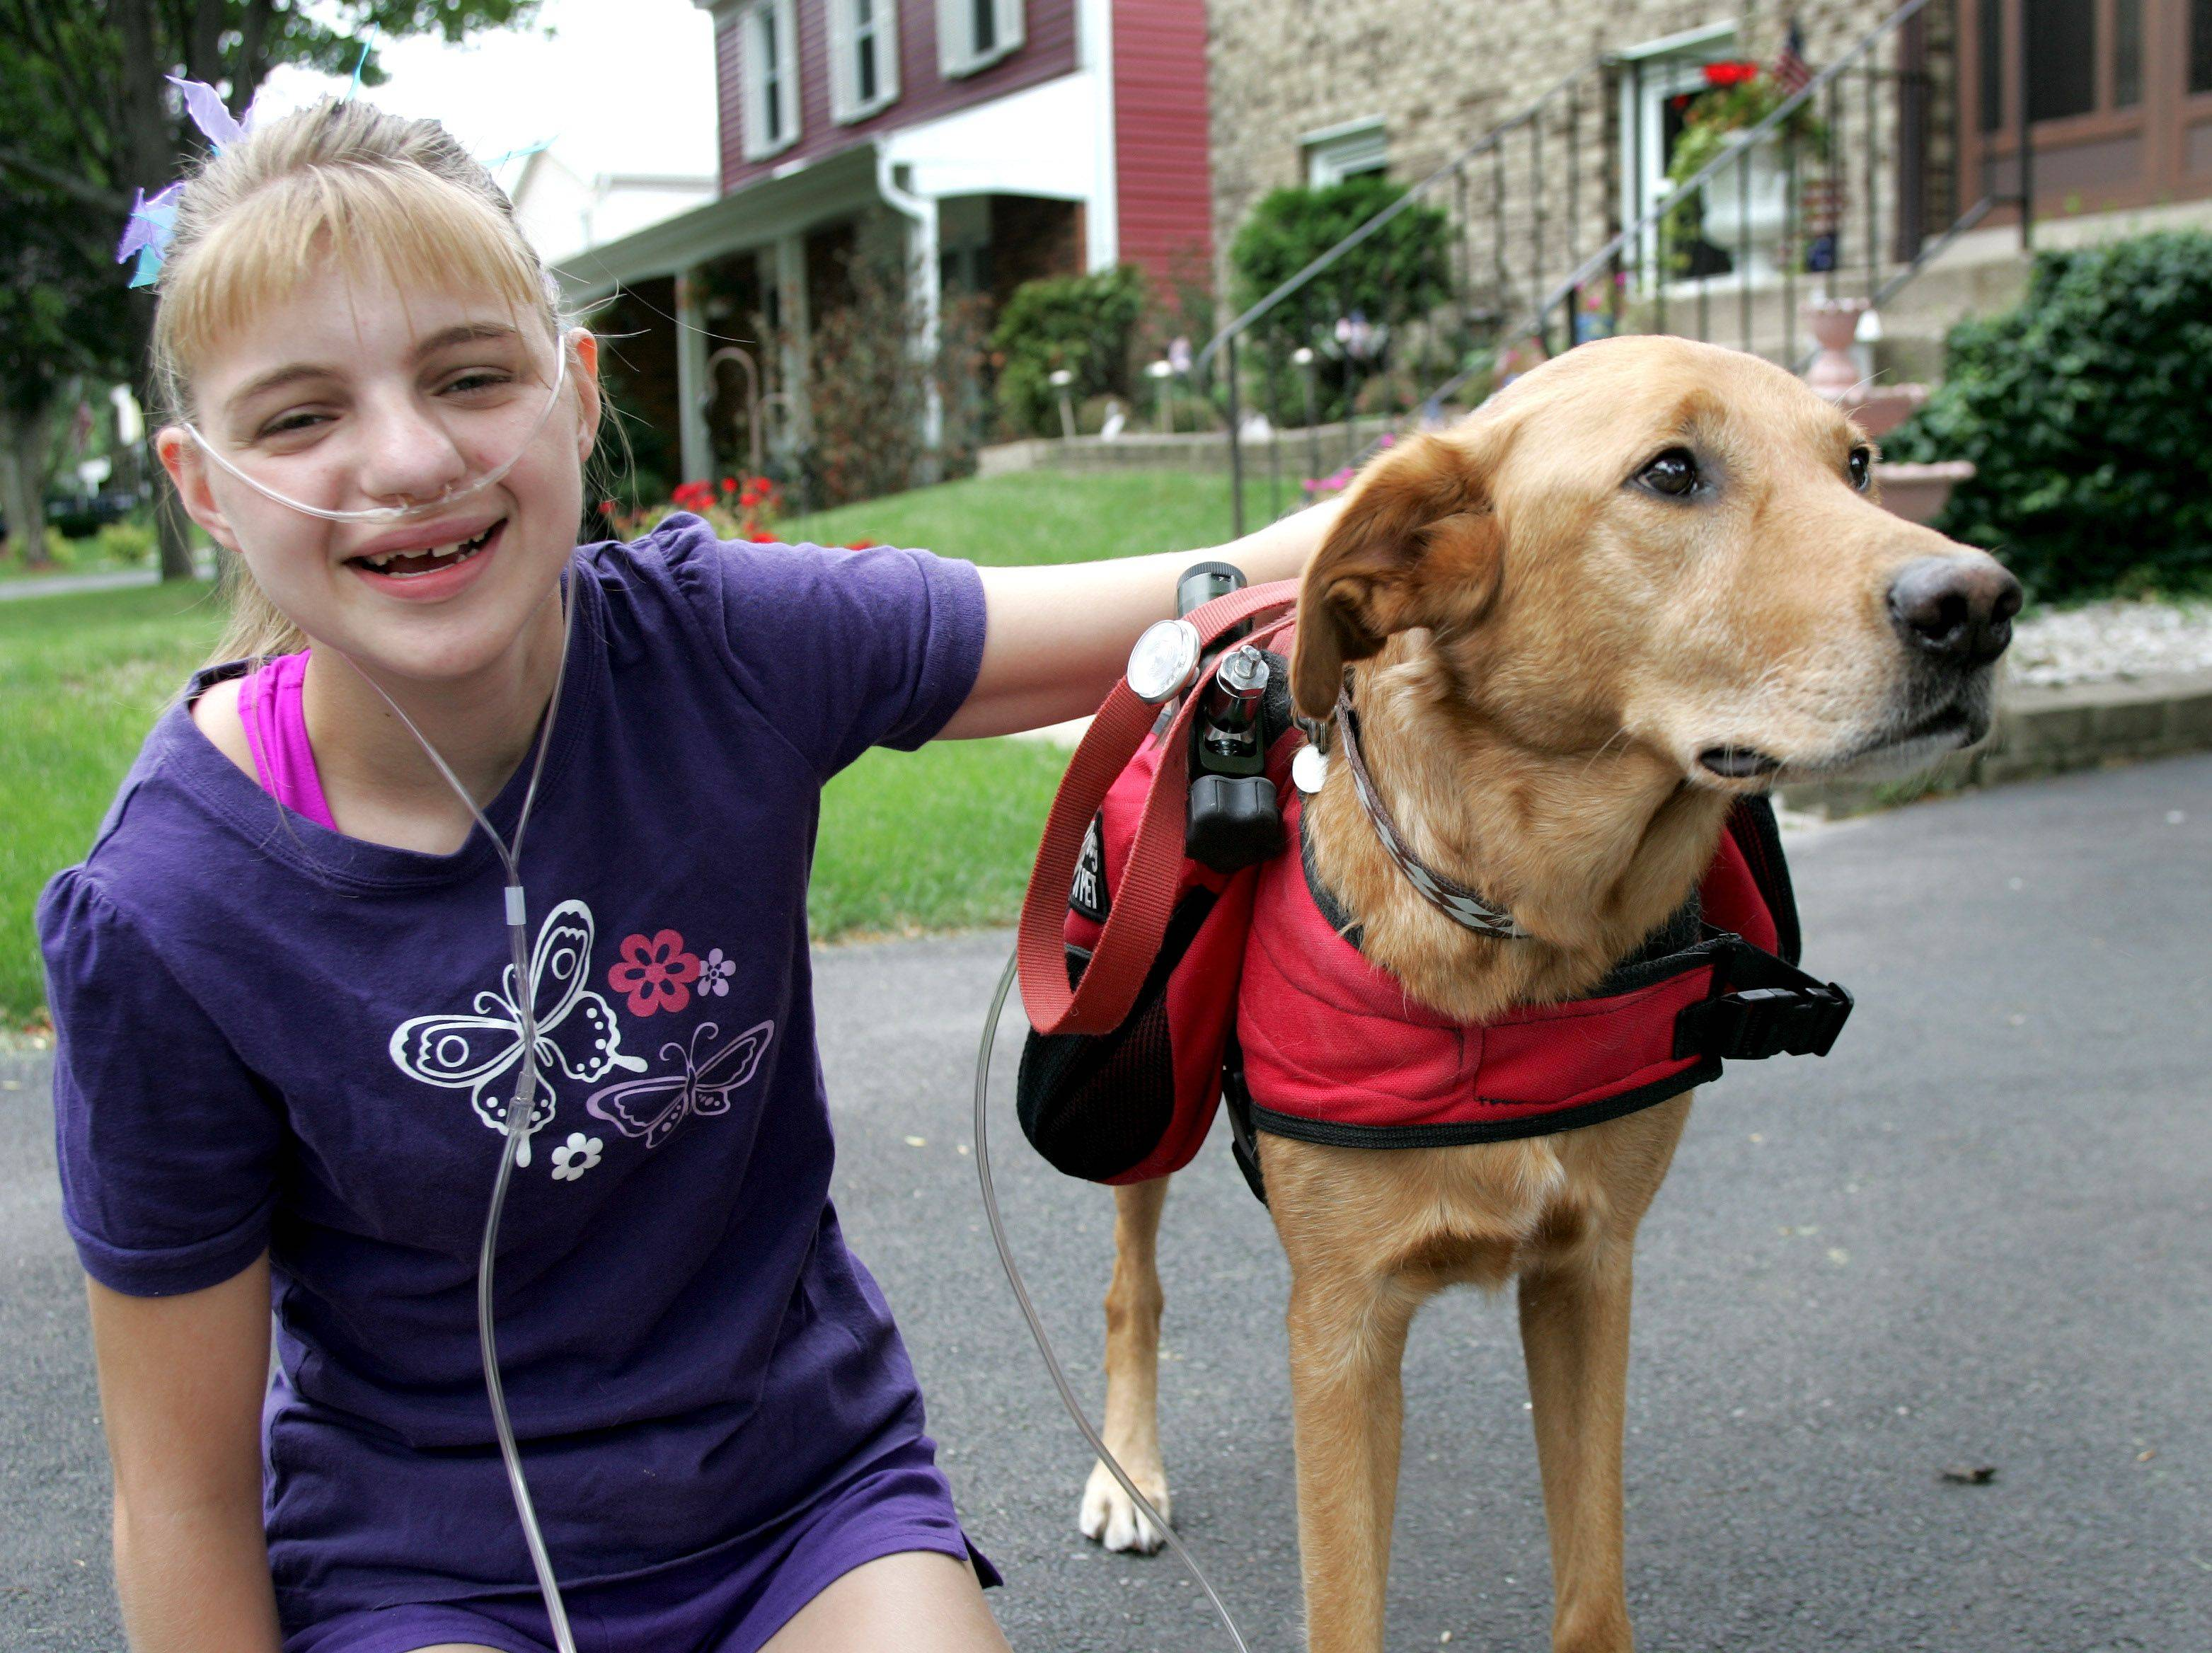 Jenny Youngwith's service dog, Simba, a 6-year-old yellow Lab mix, won't be allowed to carry her oxygen tanks on the basketball court.